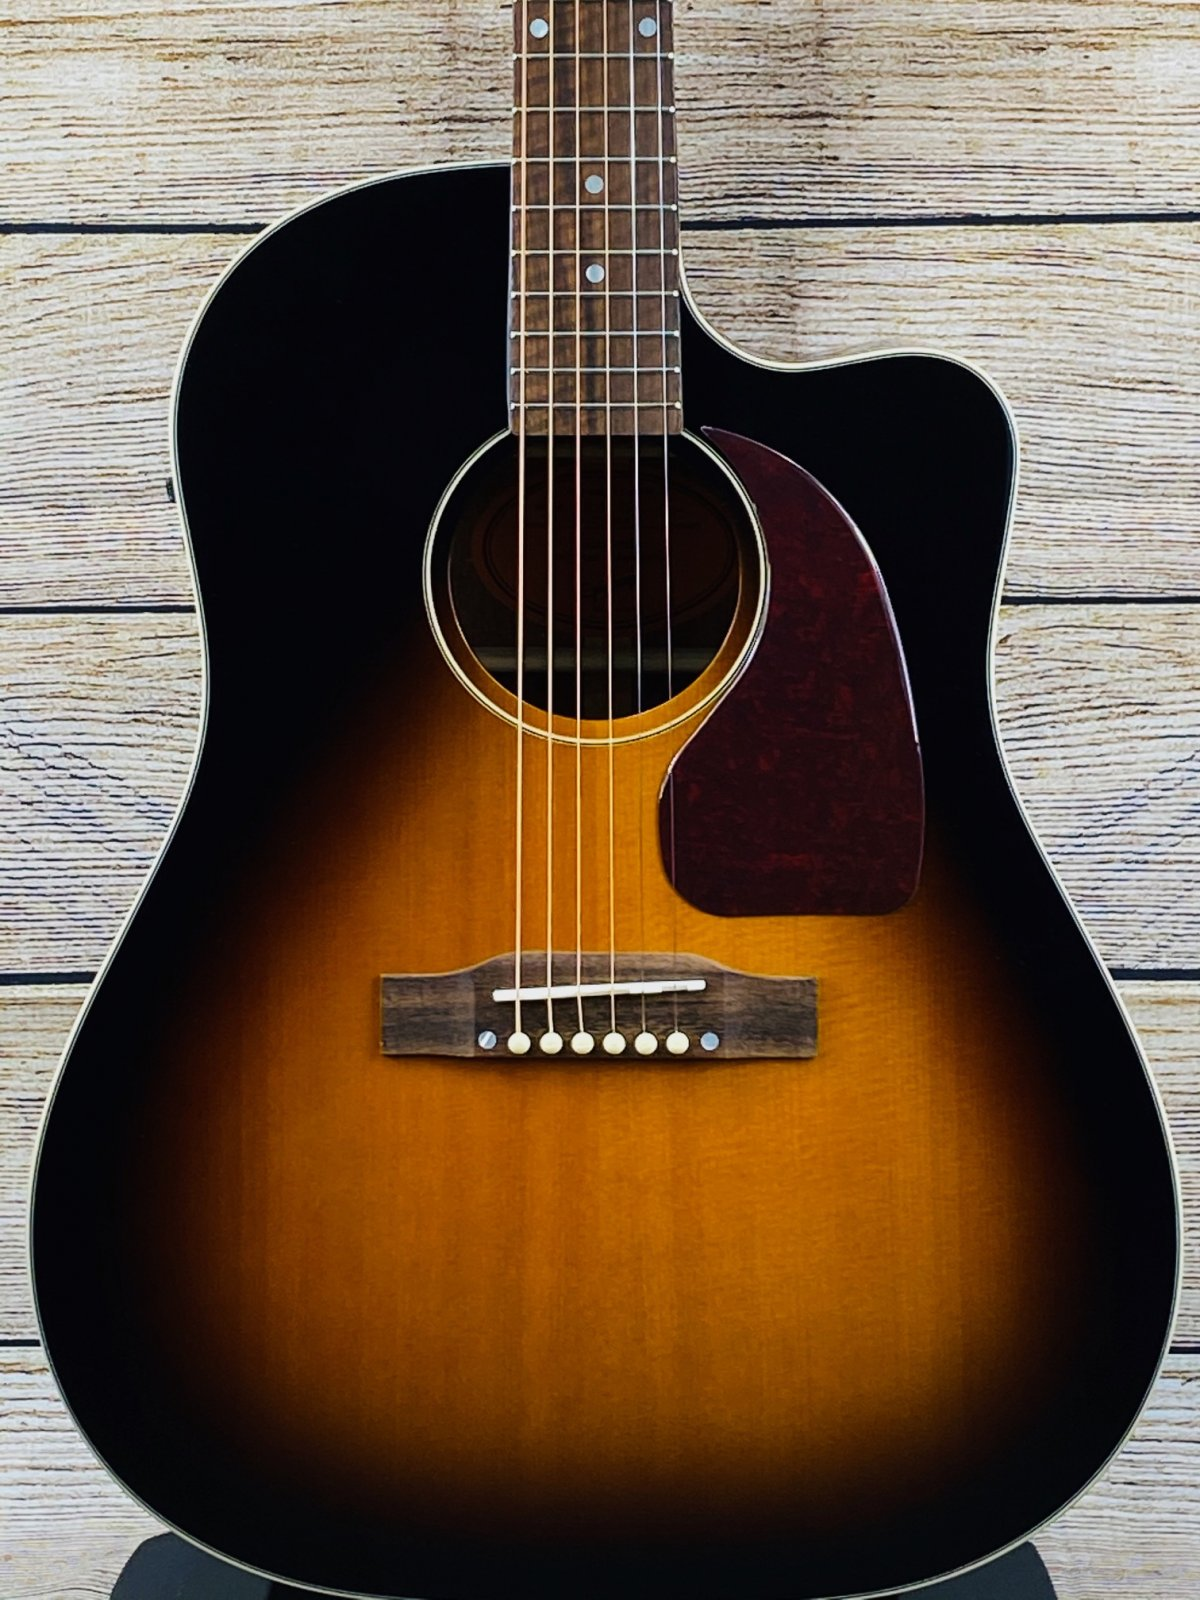 Epiphone Inspired by Gibson J-45 EC Acoustic-Electric Guitar - Aged Vintage Sunburst